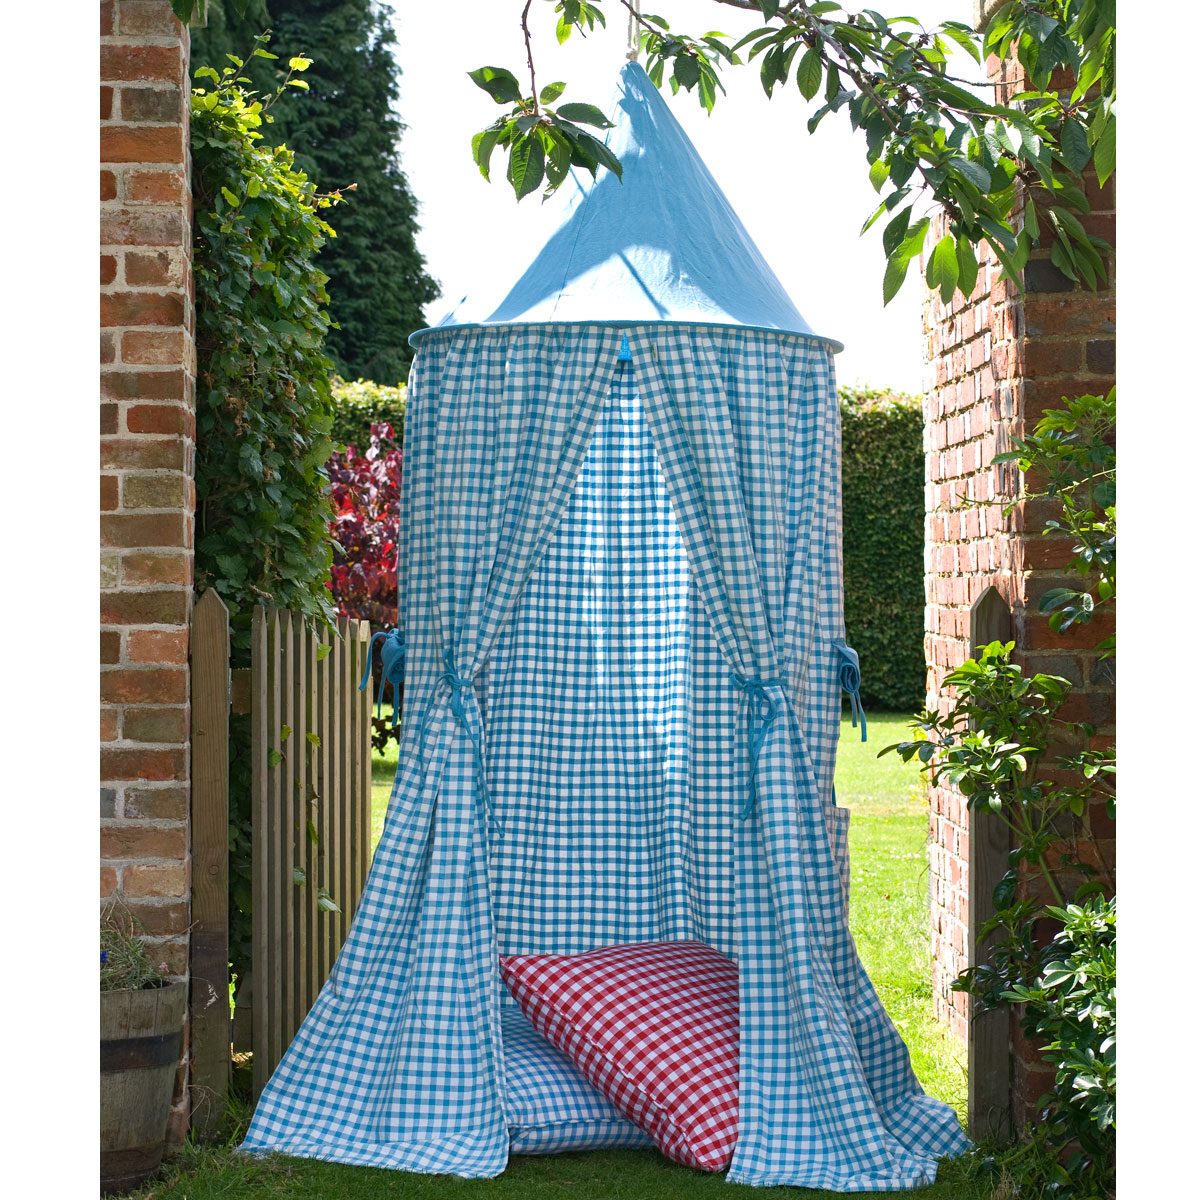 Sky Blue Gingham Hanging Tents Thumbnail 3